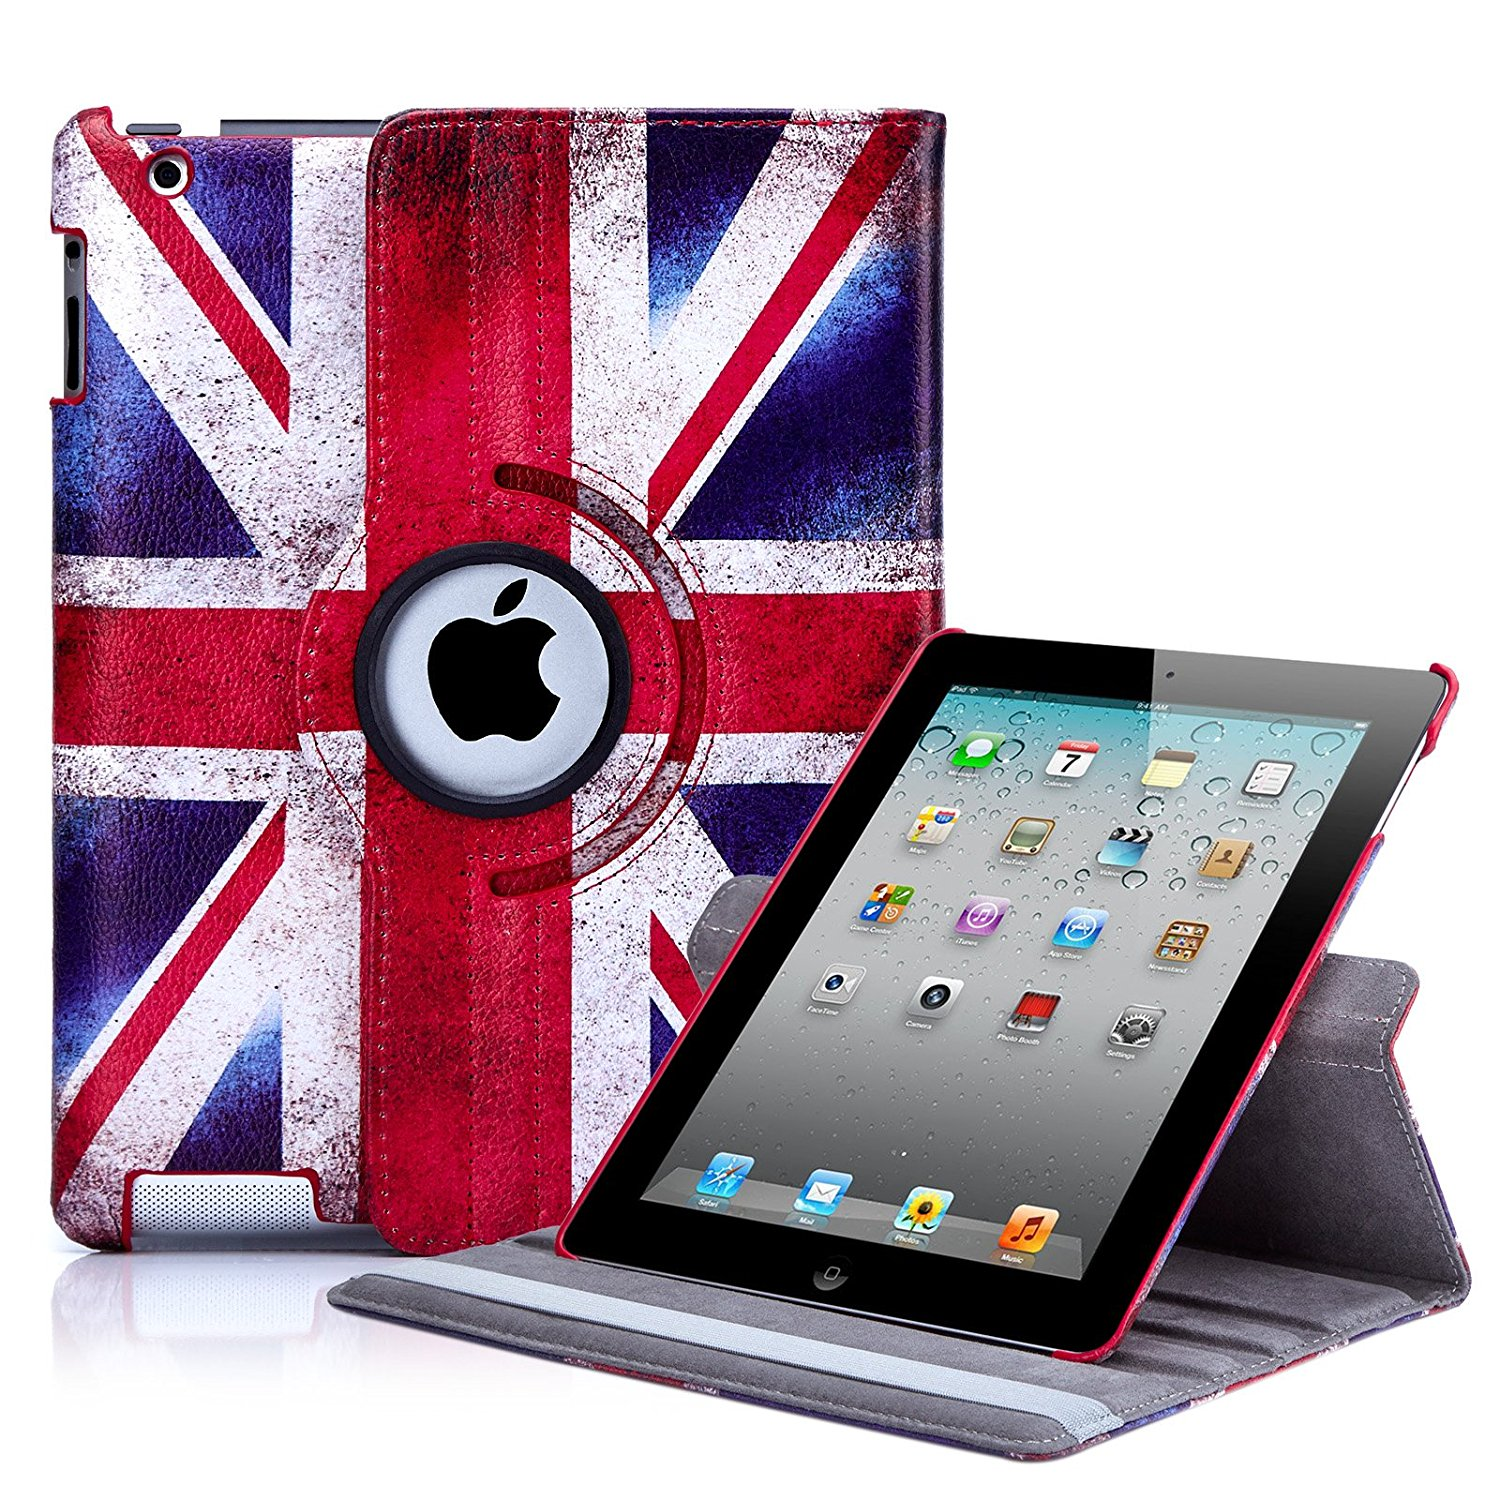 Get Quotations 32nd Designer Book Wallet 360 Degree Revolving Case Cover For Le Ipad 2 3 4